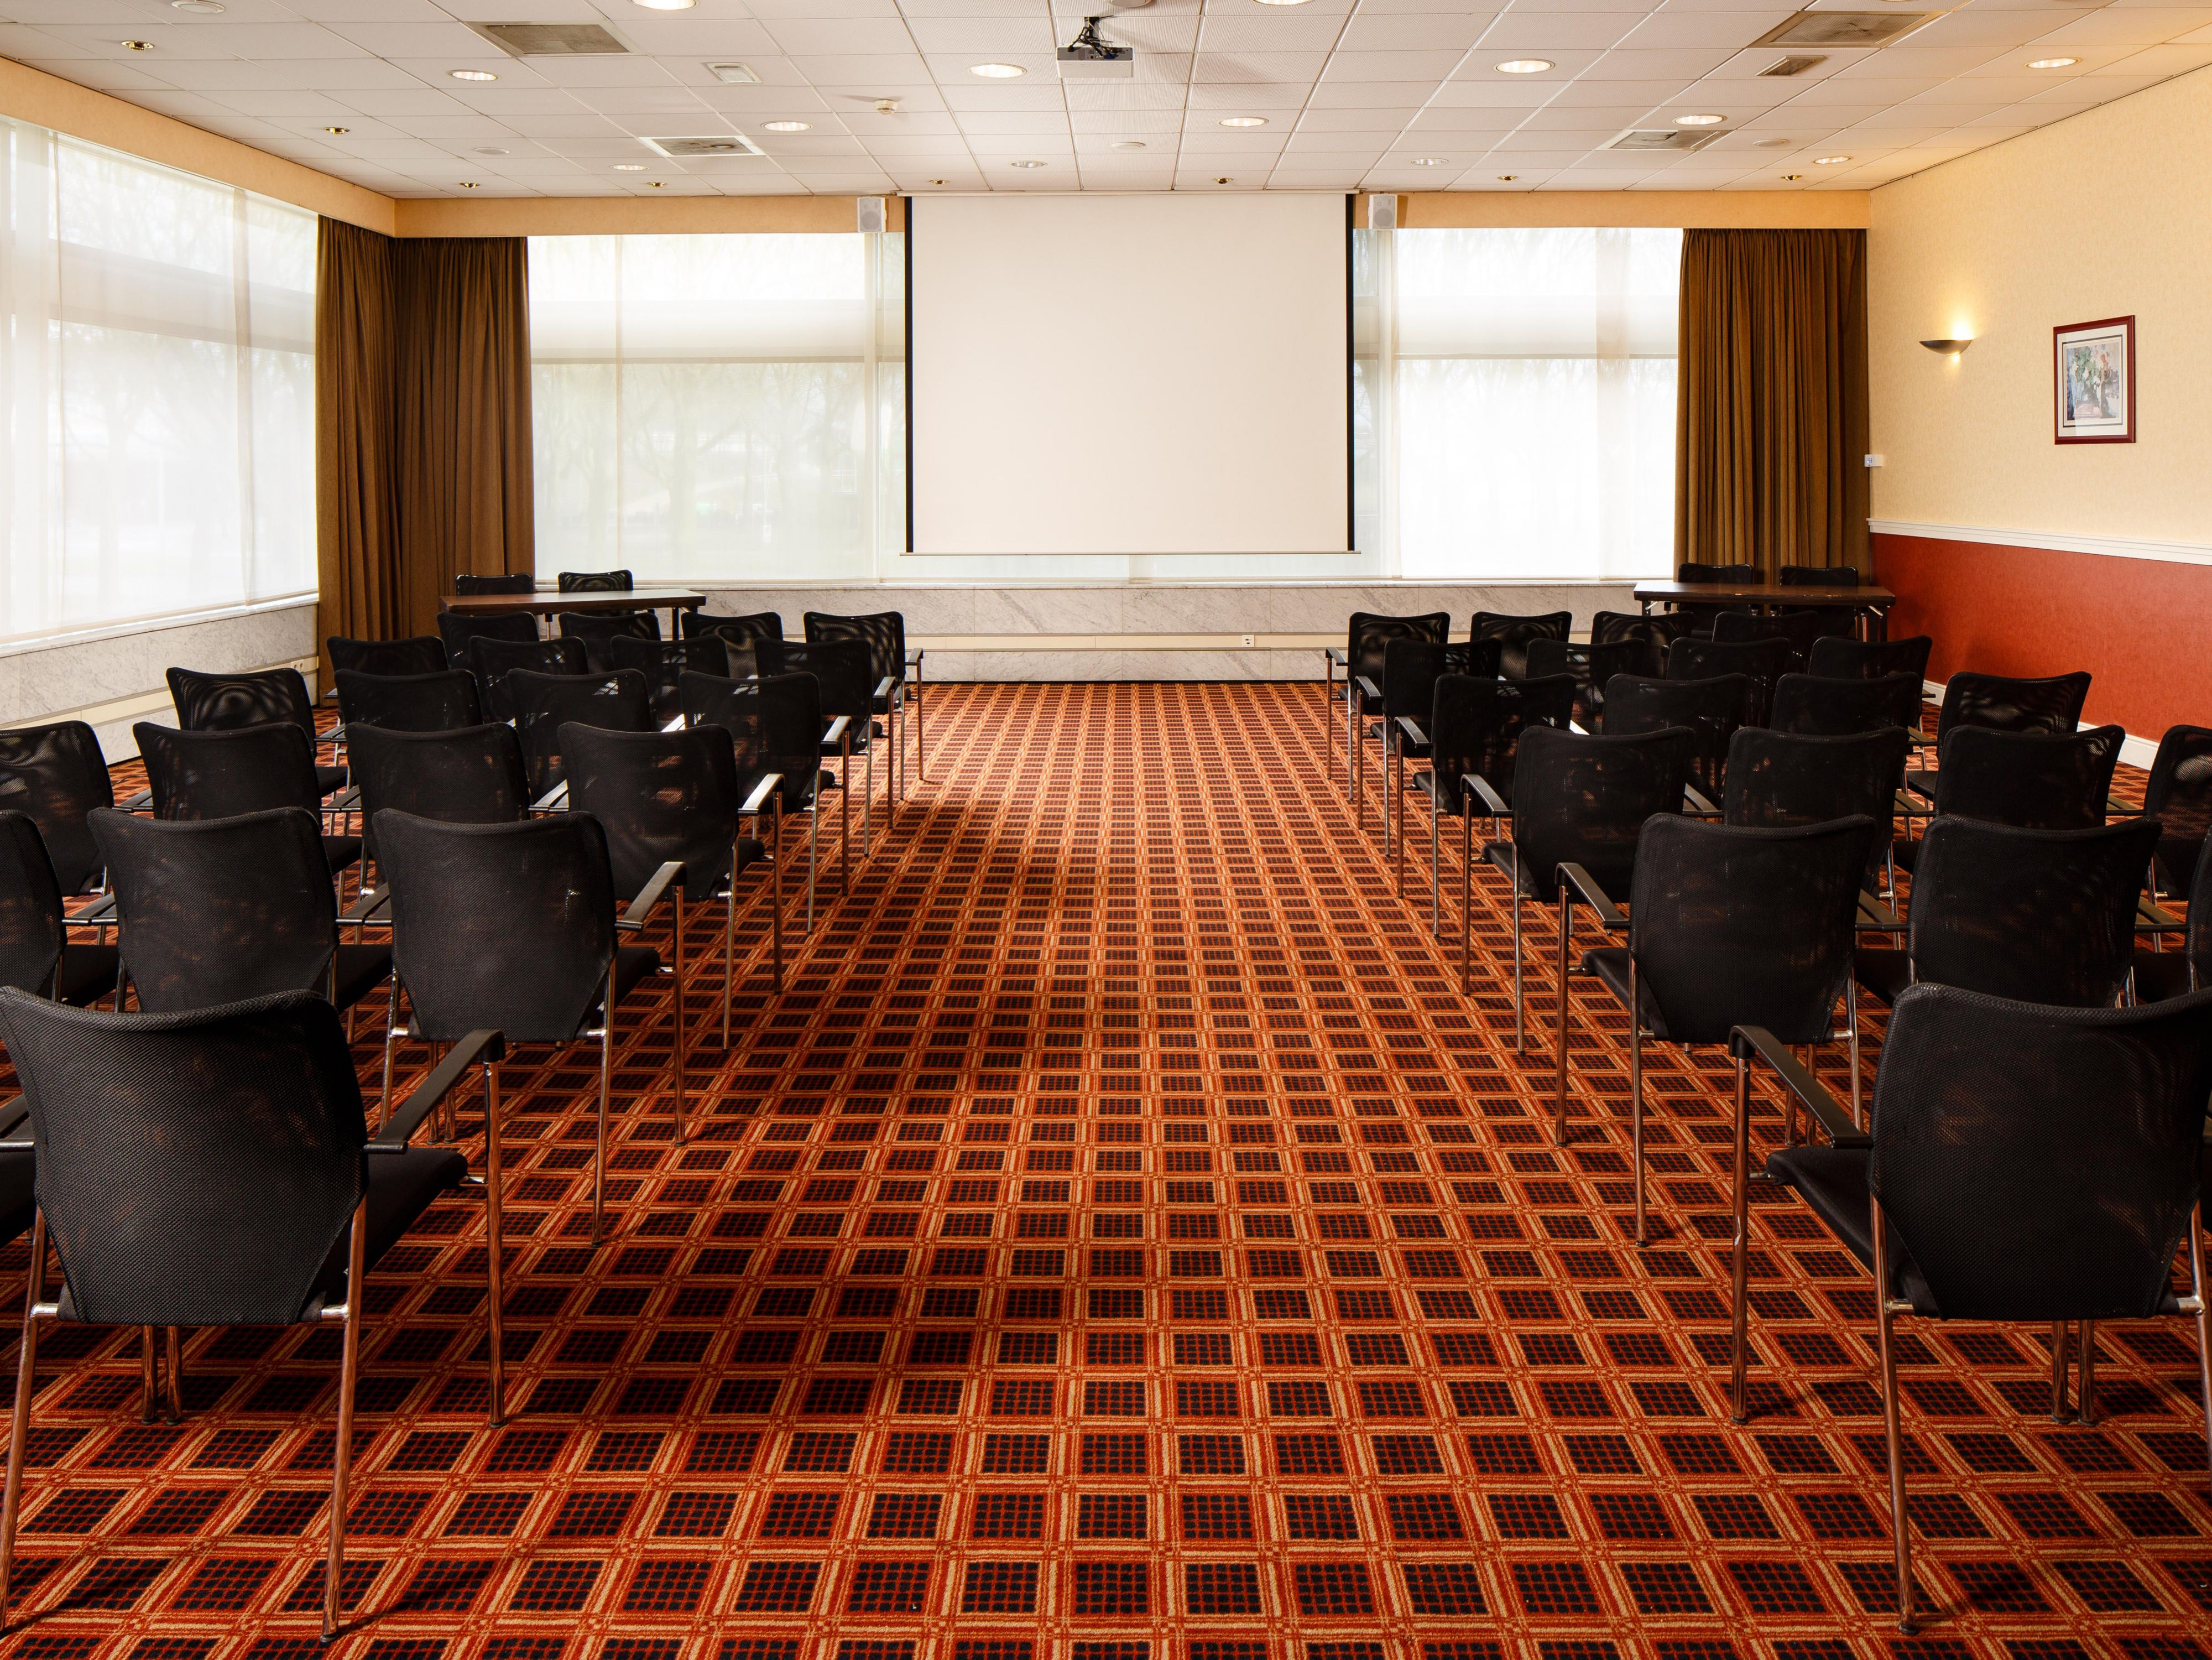 Theatre Style Meeting Room Set Up